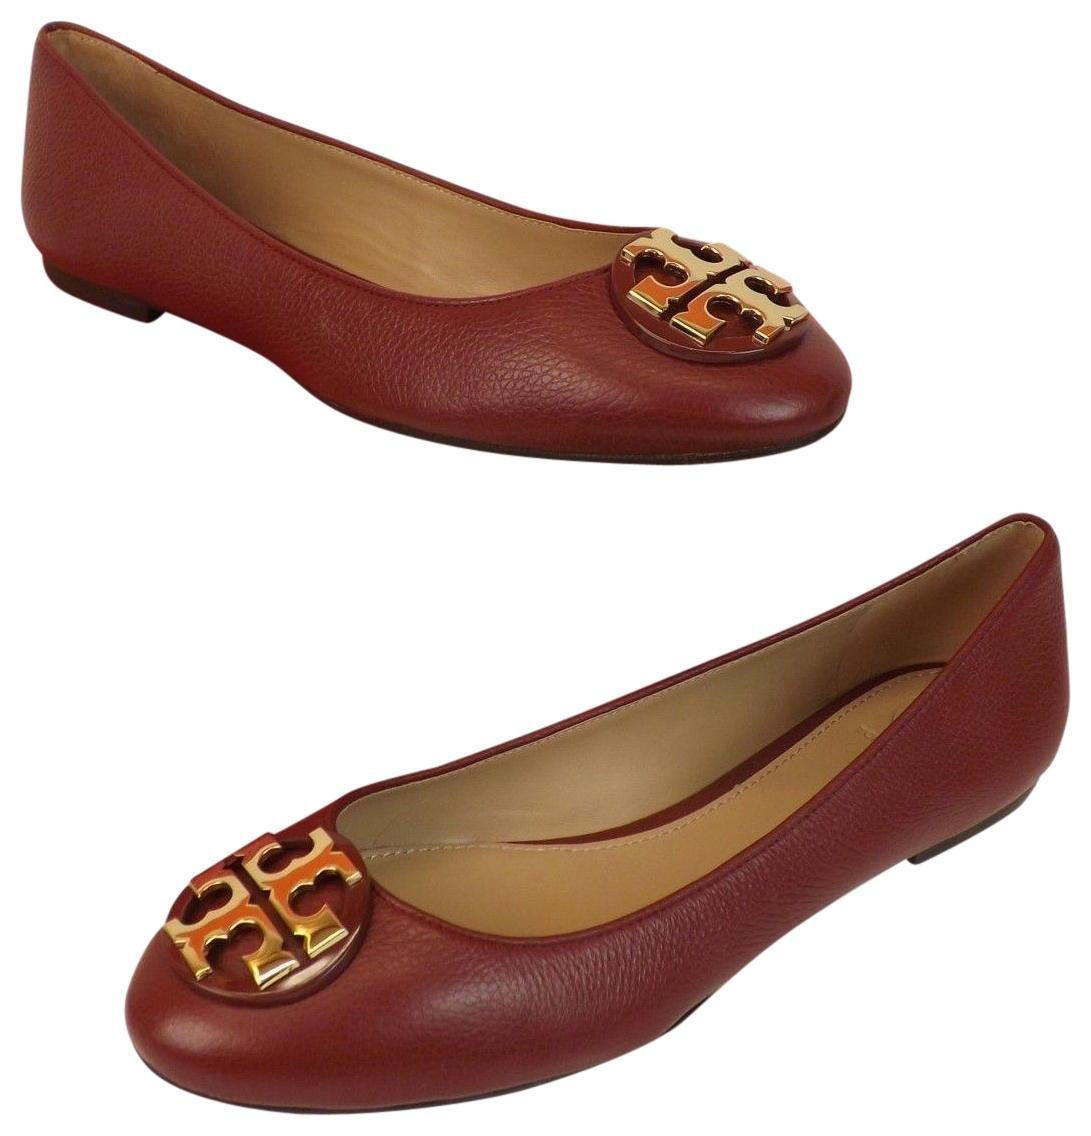 Tory Burch Red Agate/Gold Claire Tumbled Leather Tone Reva Ballet Flats Size US 9.5 Regular (M, B)